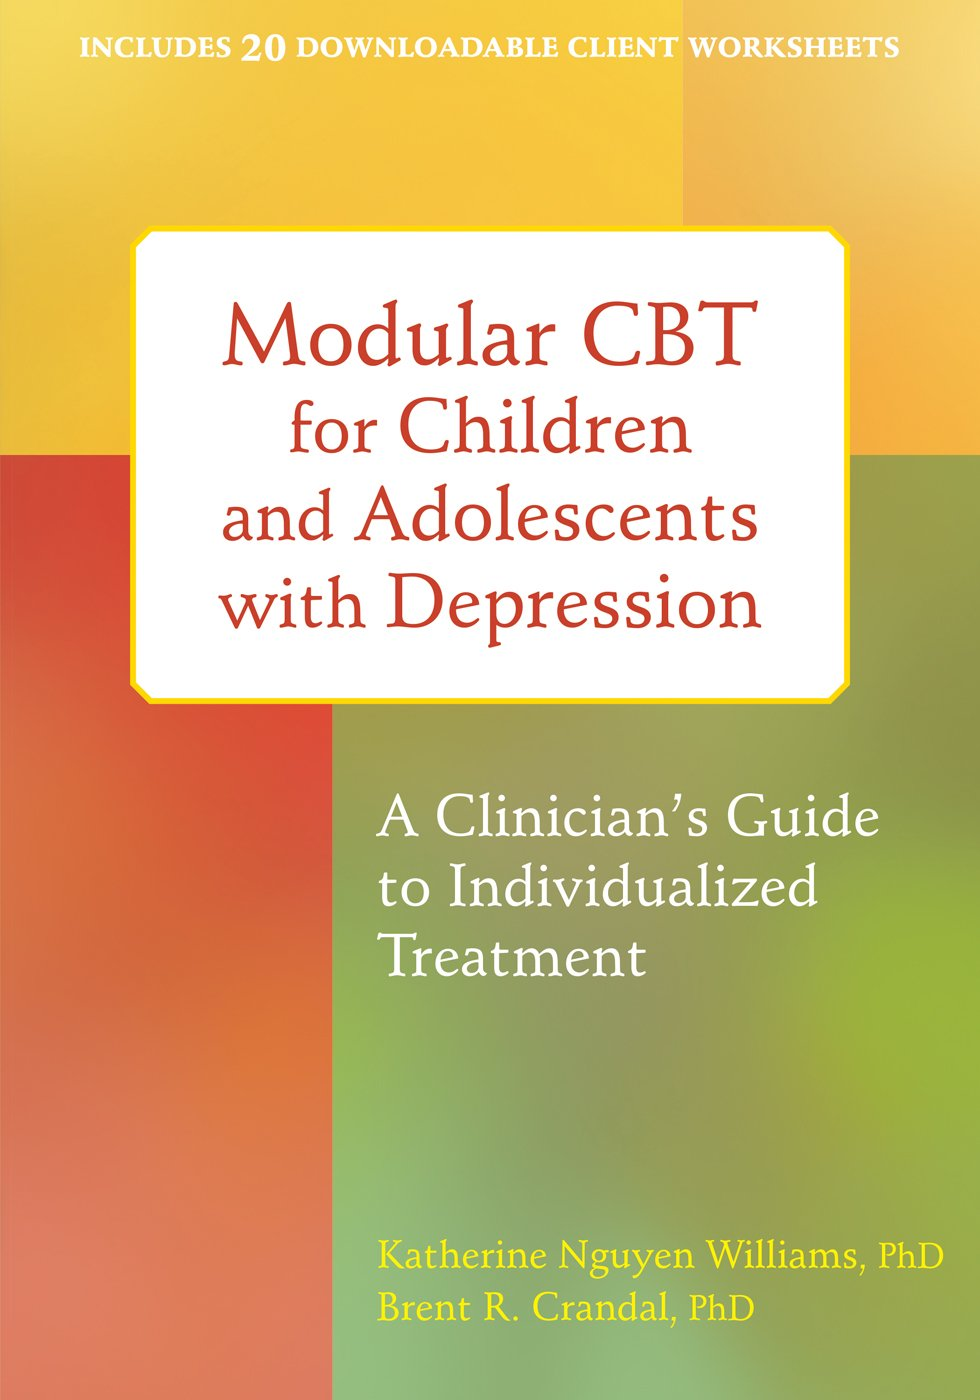 Amazon.com: Modular CBT for Children and Adolescents with ...